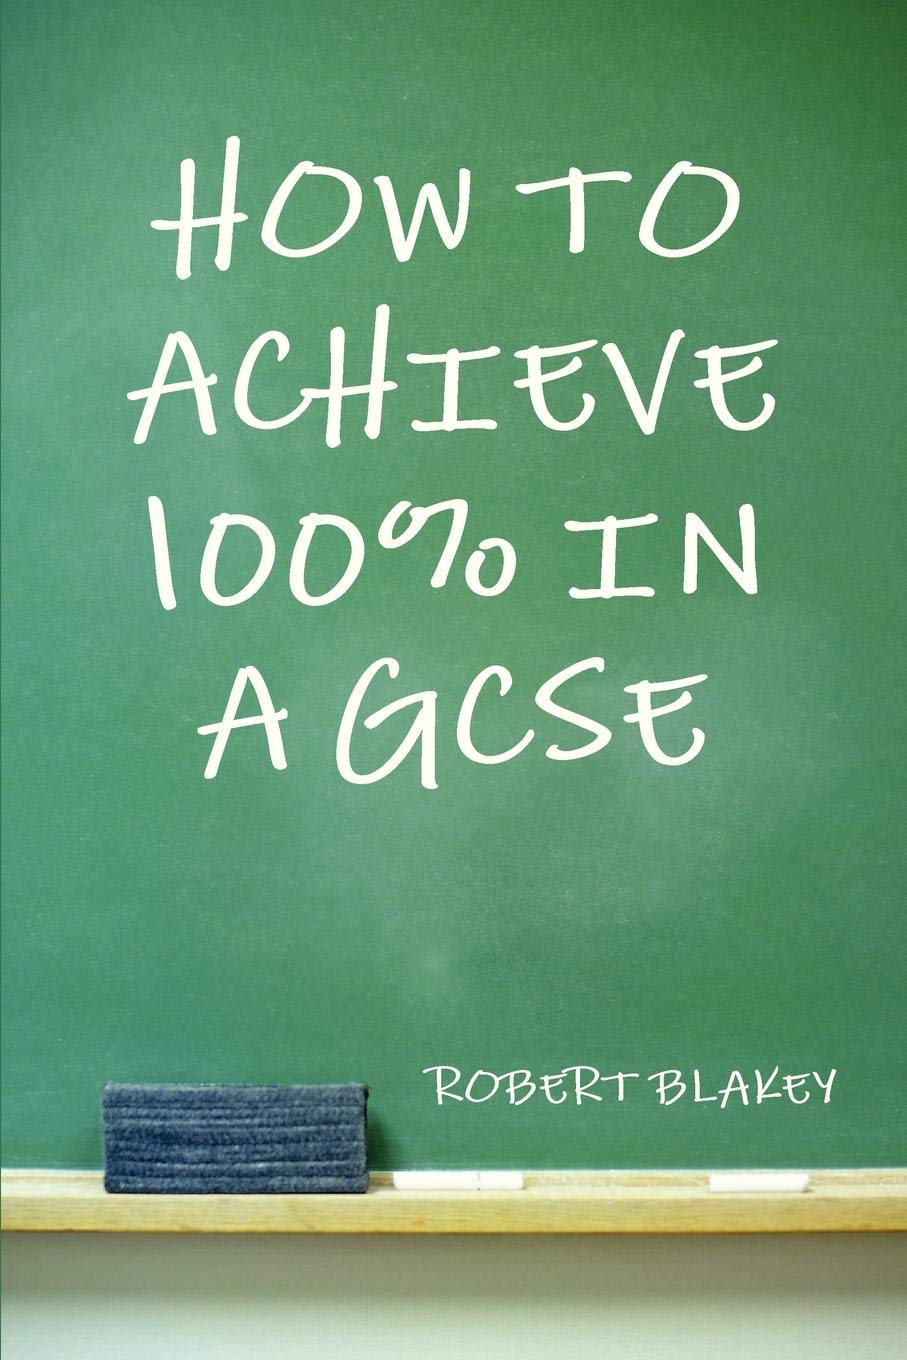 How to Achieve 100% in a GCSE - Guide to GCSE Exam and